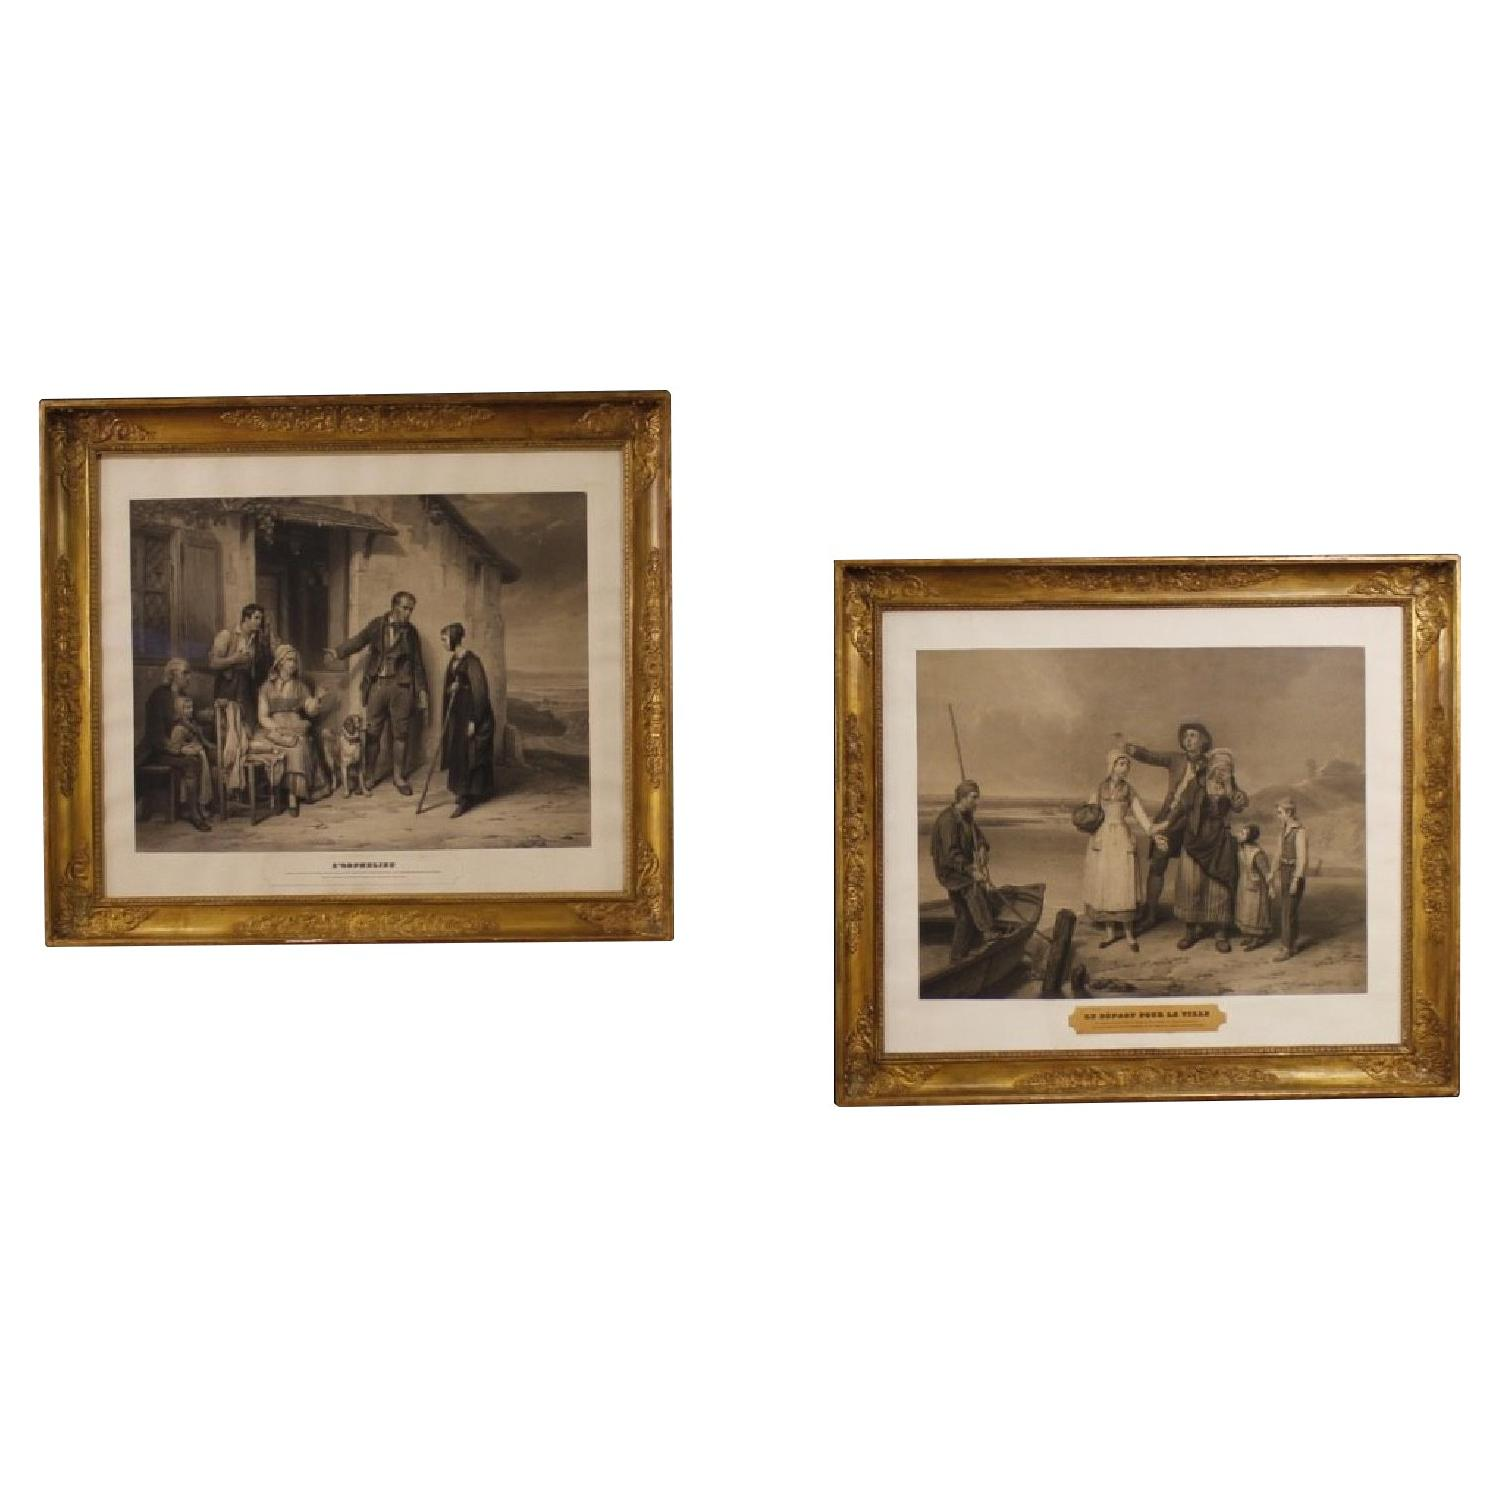 Antique 19th Century French Prints